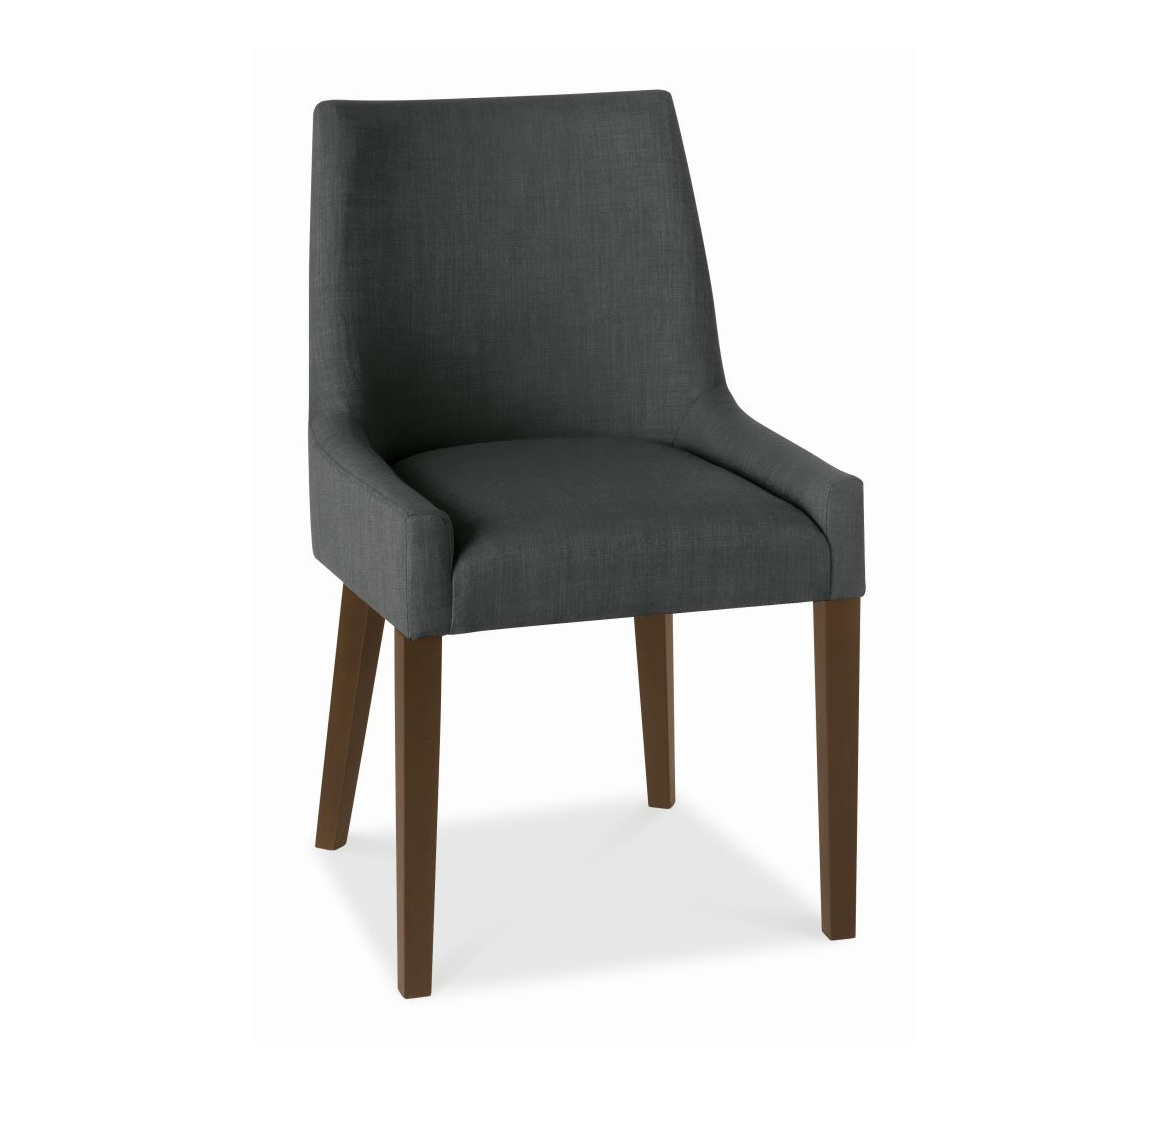 ALEX CHARCOAL UPHOLSTERED DINING CHAIR WITH WALNUT LEGS -0